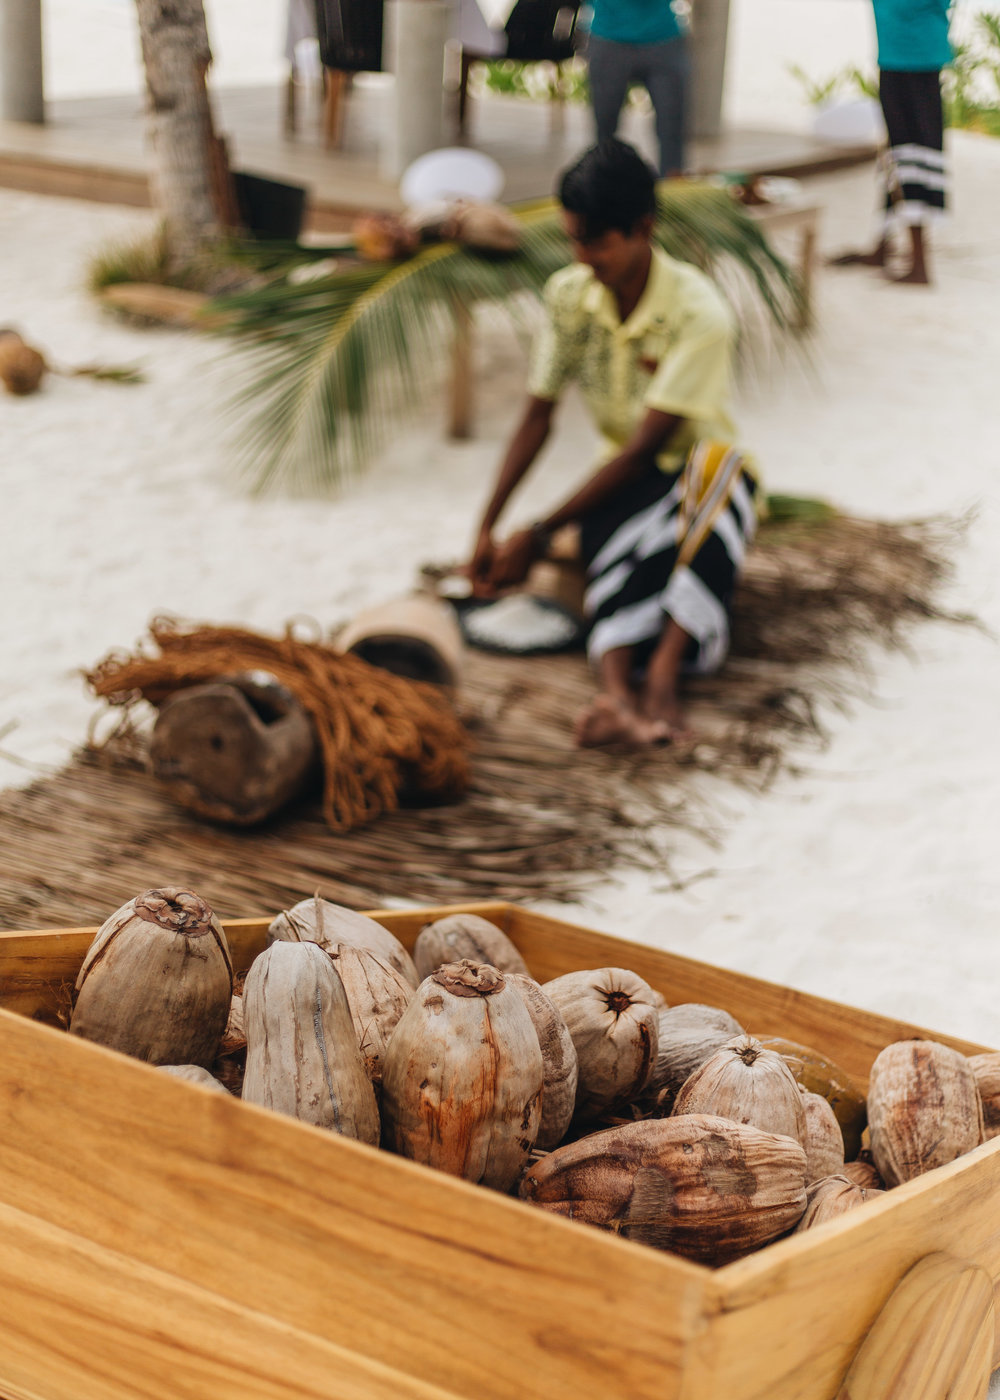 4:30 PM  //  Go Coconuts!  We got to catch a glimpse into the many ways Maldivians use coconuts at the afternoon Go Coconuts show! We learned to climb coconut trees, crack and use coconuts, and the many amazing uses of these giant tropical fruits!